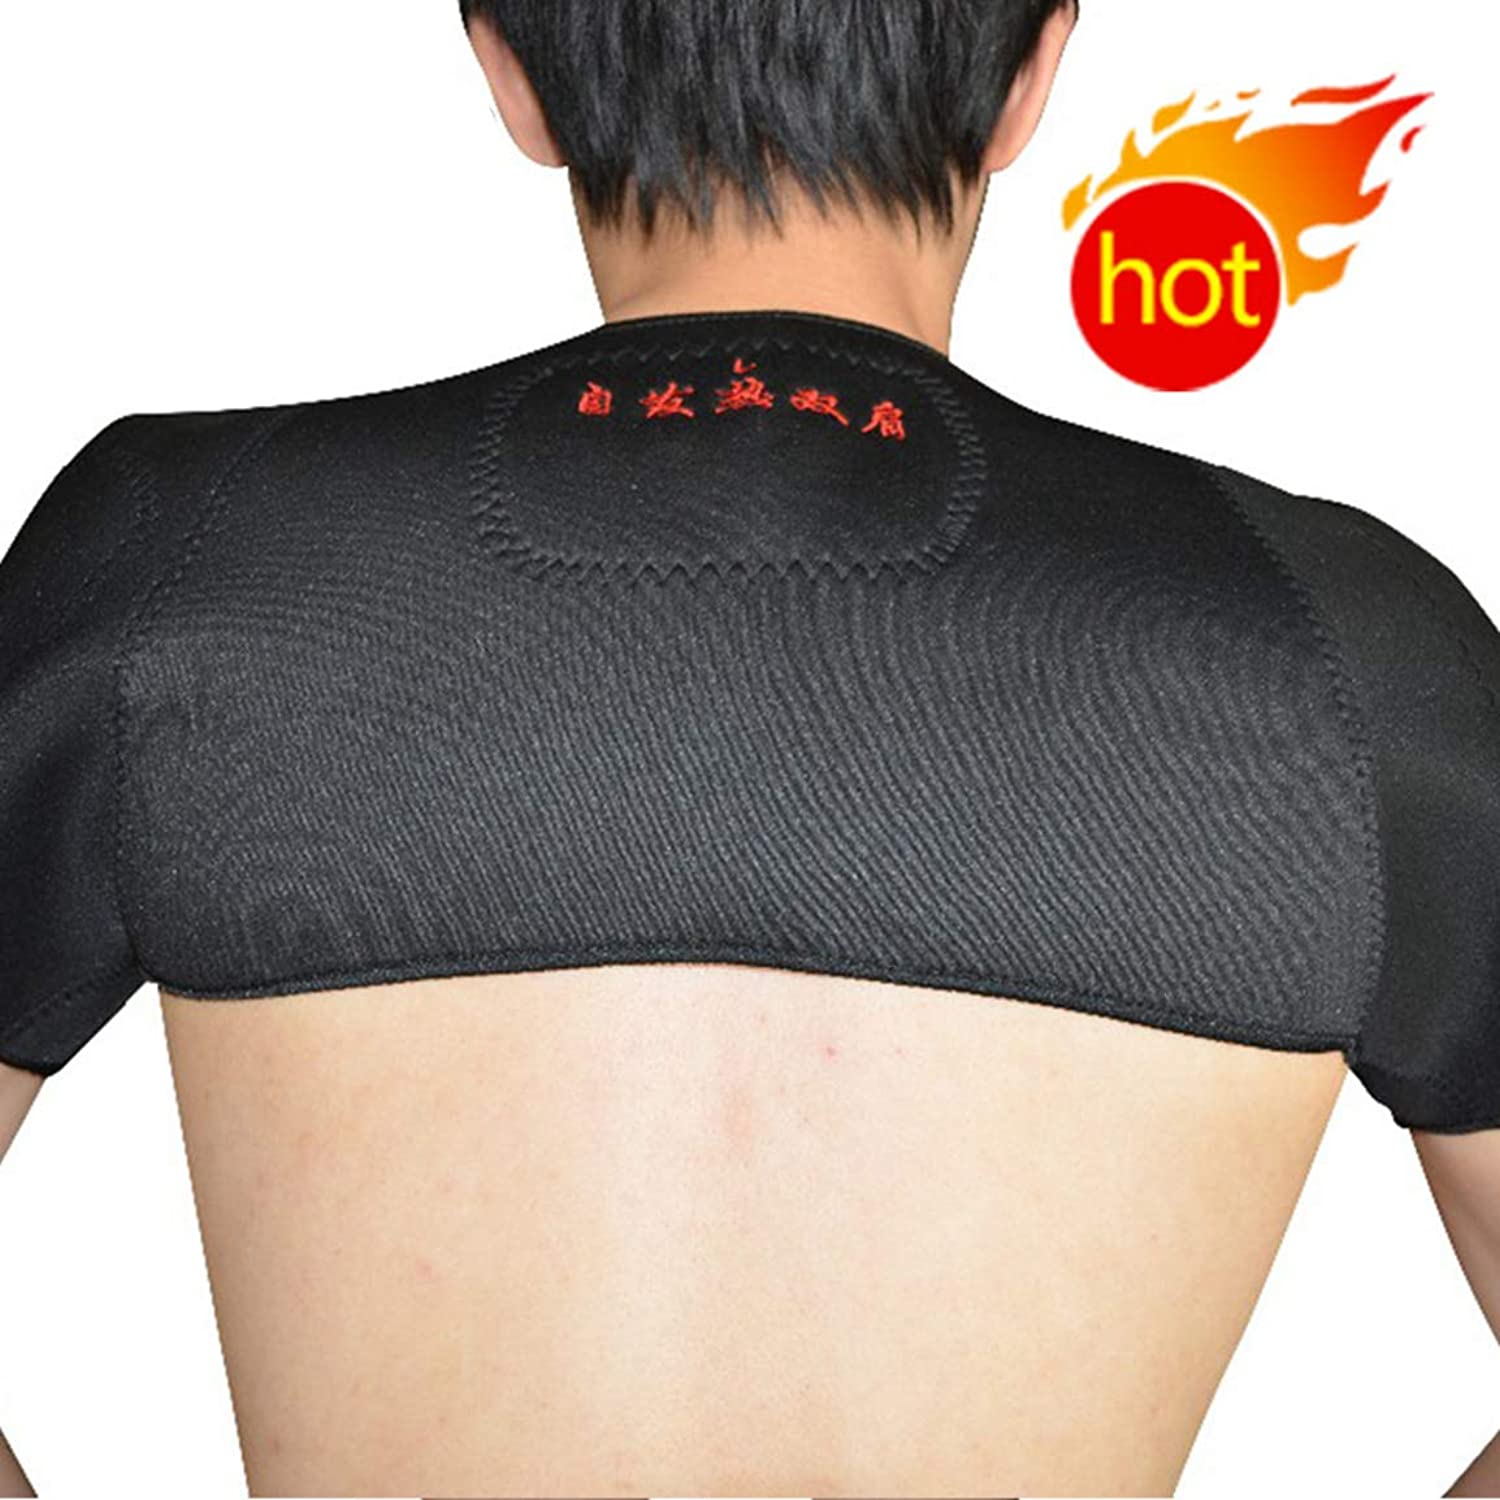 Shoulder Support Predection Brace Magnetic Tourmaline Heating Wrap Therapy Tourmaline Heat